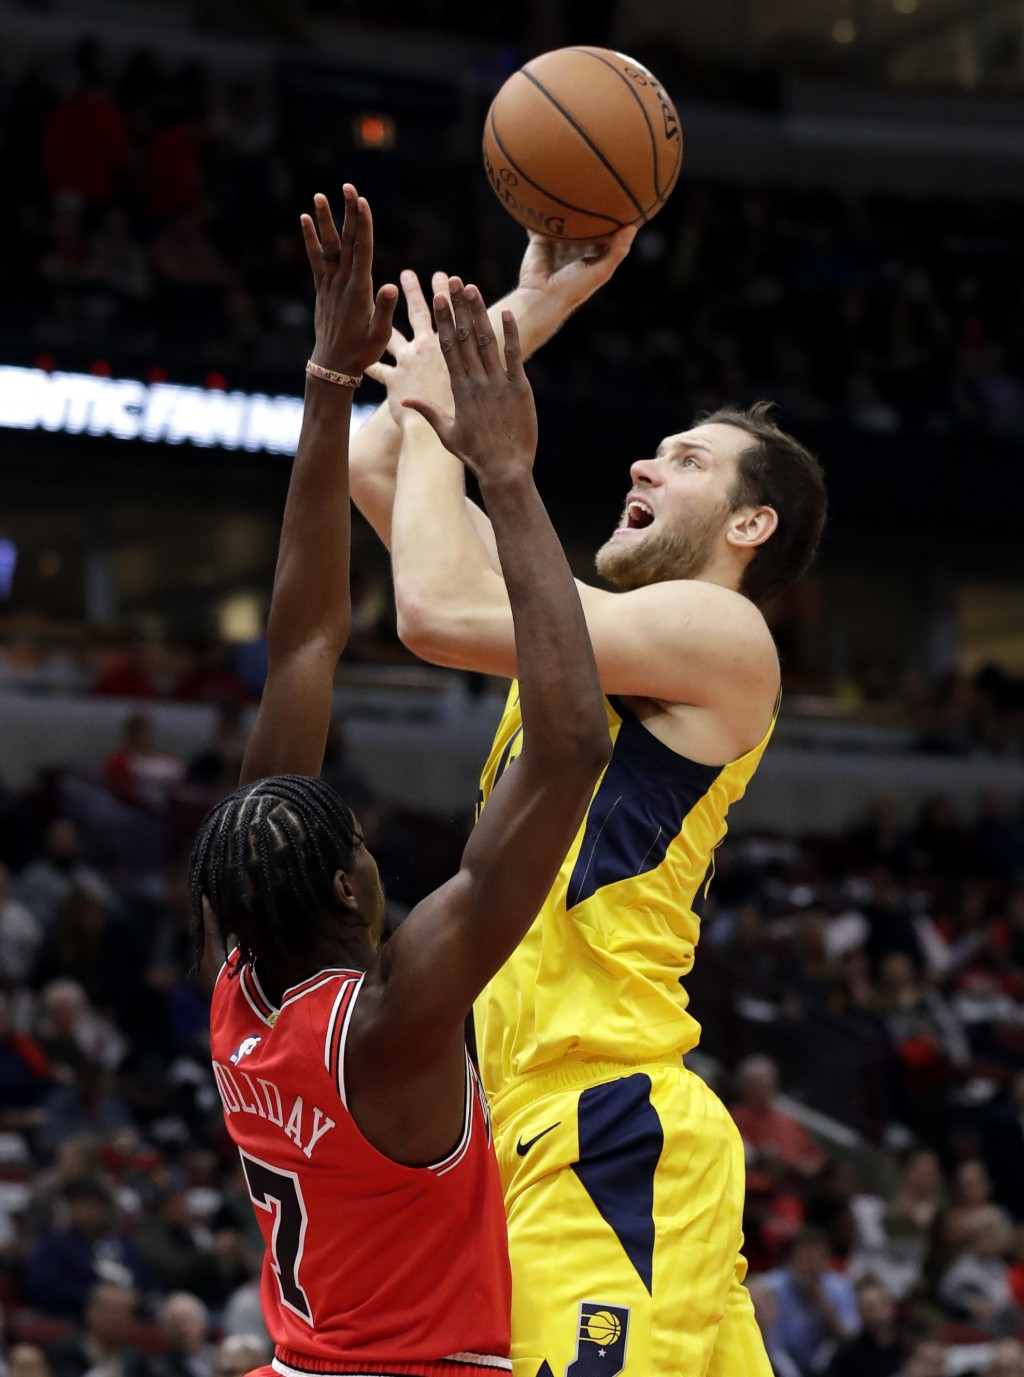 Indiana Pacers forward Bojan Bogdanovic, right, shoots against Chicago Bulls guard Justin Holiday during the first half of an NBA basketball game Frid...